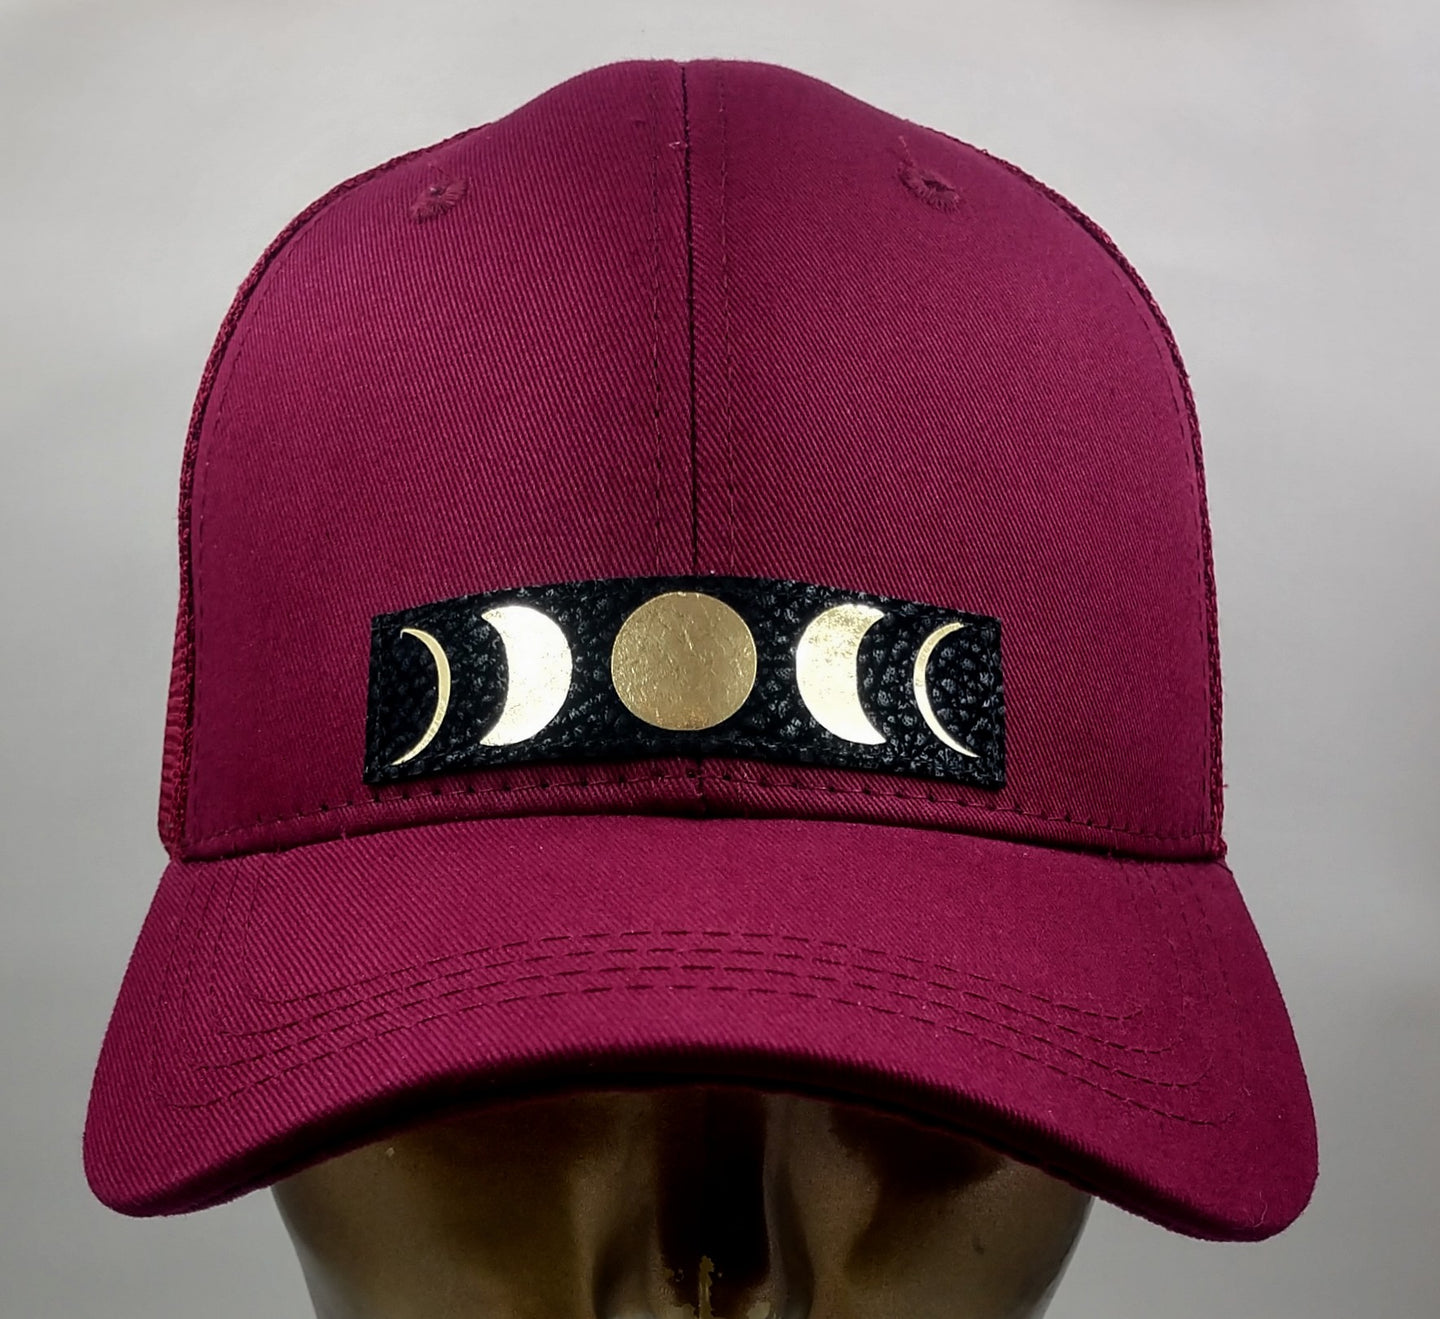 Buddha Gear Buddha Lids Burgundy snapback with hand made moon phase patch. Buddha wear  - Who isn't mesmerized by the moon? the Moon inhabits the landscapes of the soul, emotions, and dream life 🌕❤️  The moon is a feminine symbol, universally representing the rhythm of time as it embodies the cycle. The phases of the moon symbolize immortality and eternity, enlightenment or the dark side of Nature herself. Buddha wear